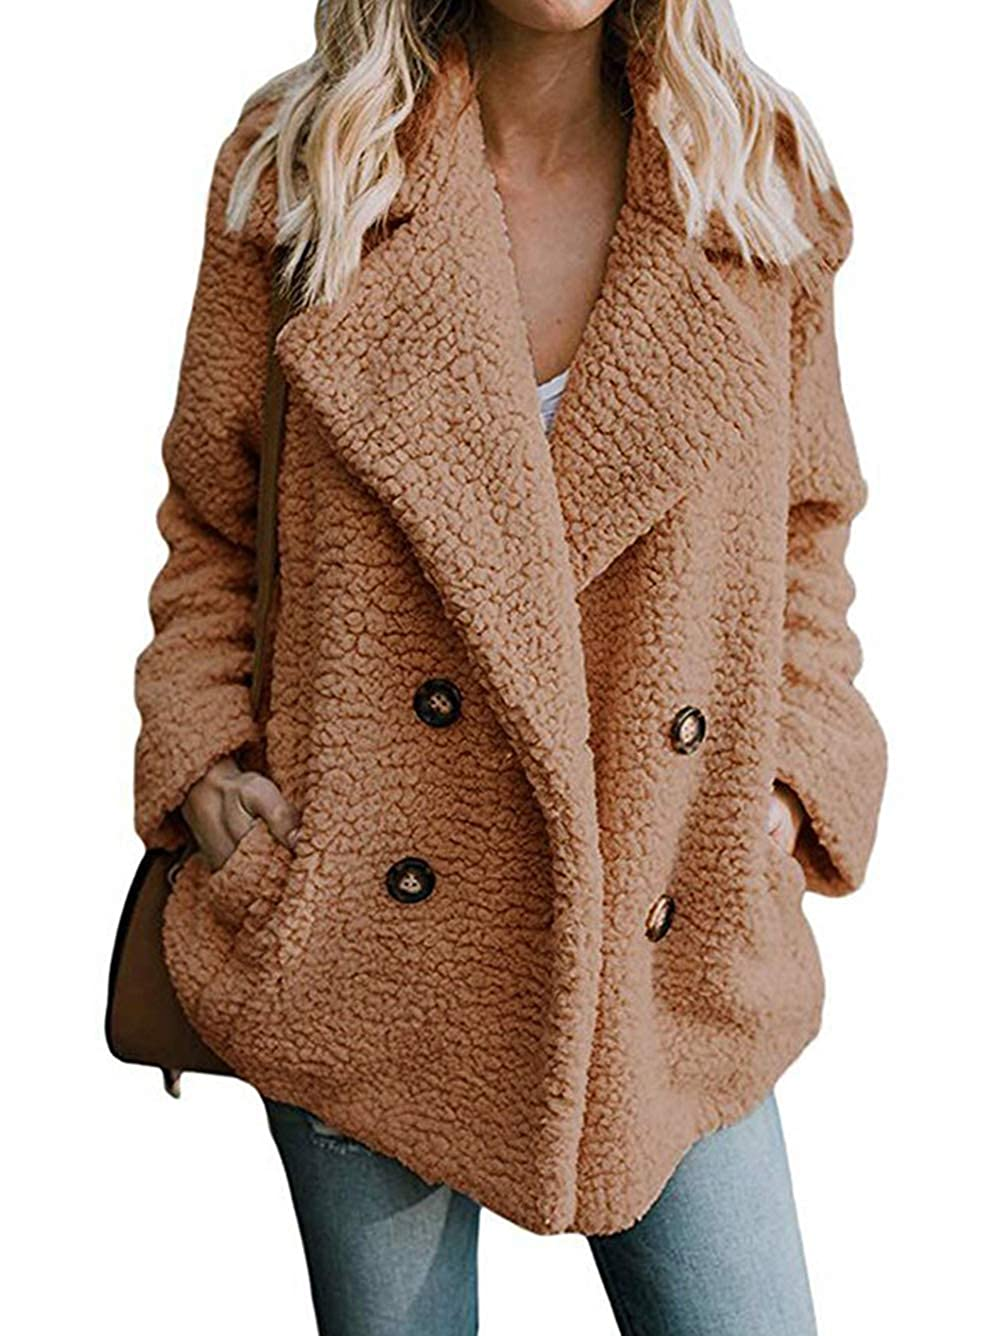 a7e459928e Famulily Womens Winter Warm Open Front Fleece Fluffy Jacket Coat Outwear  with Pockets 256342F2 Clothing